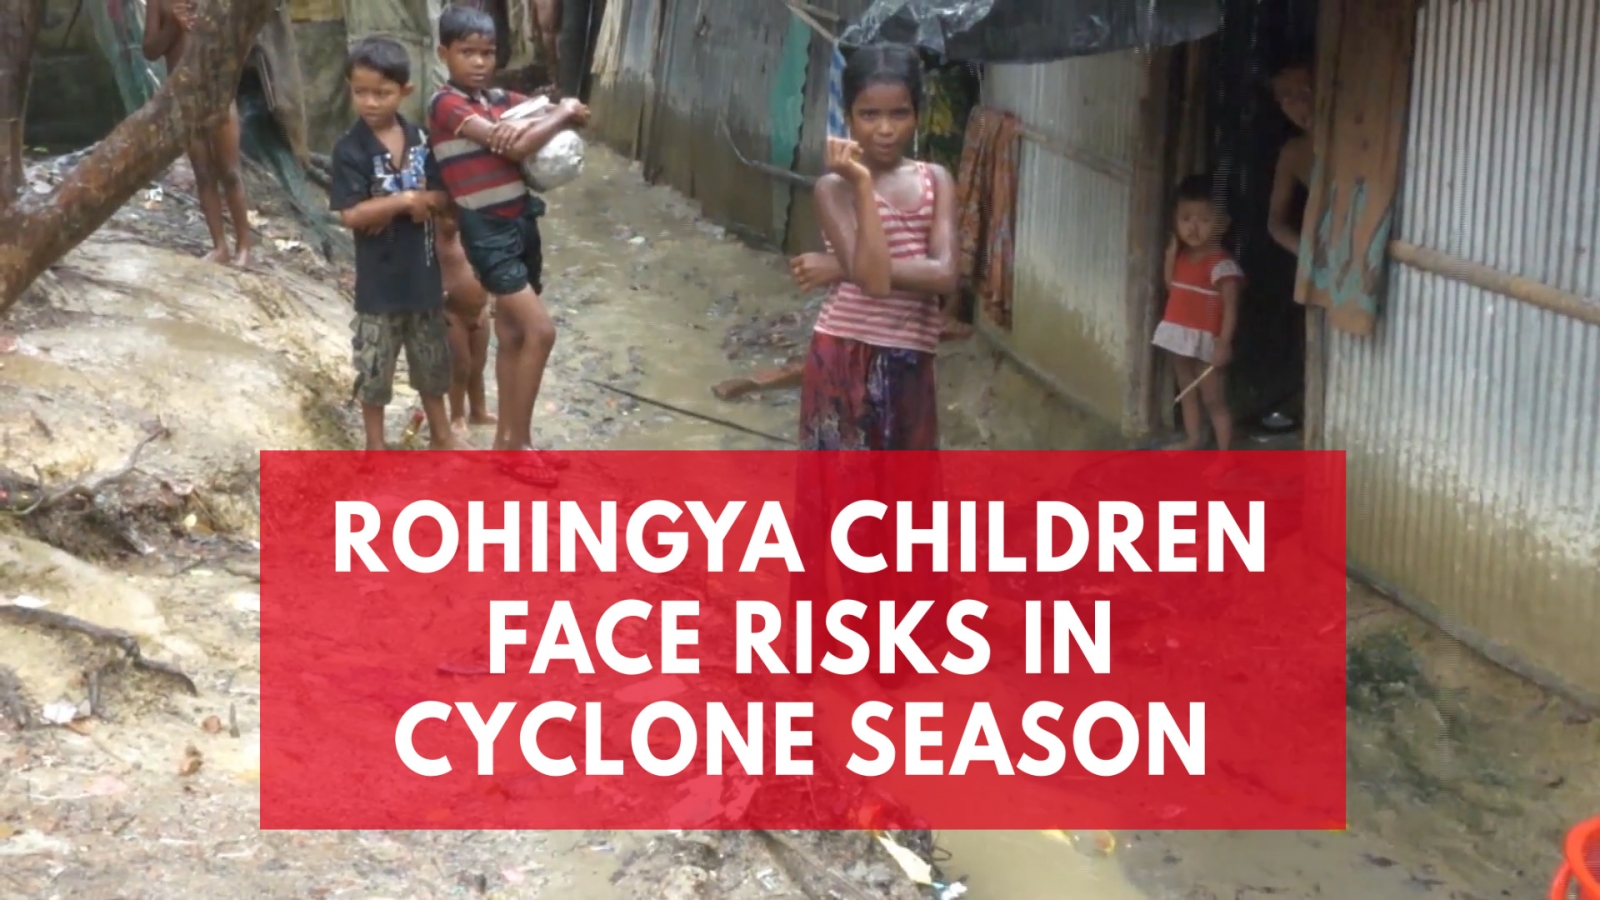 U.N. warns Rohingya refugees are at risk as cyclone season approaches